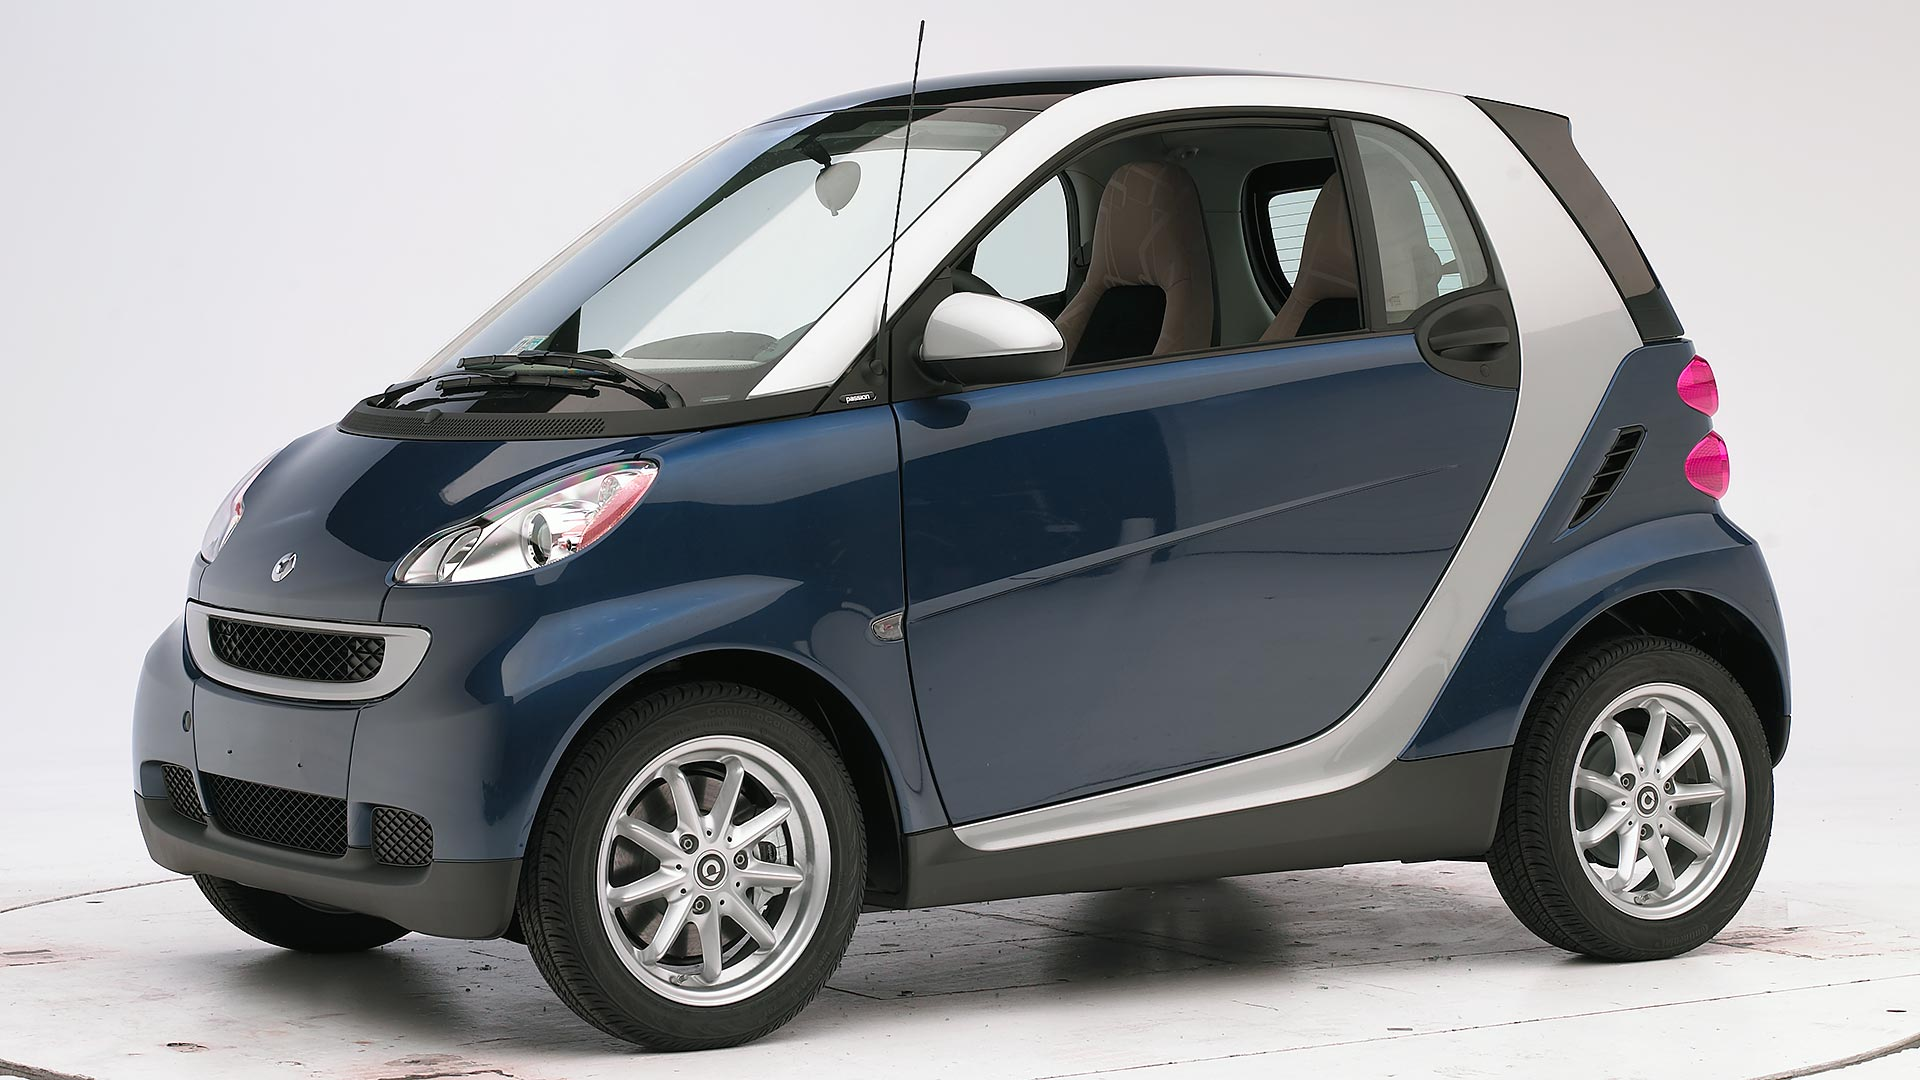 2013 Smart Fortwo 2-door hatchback